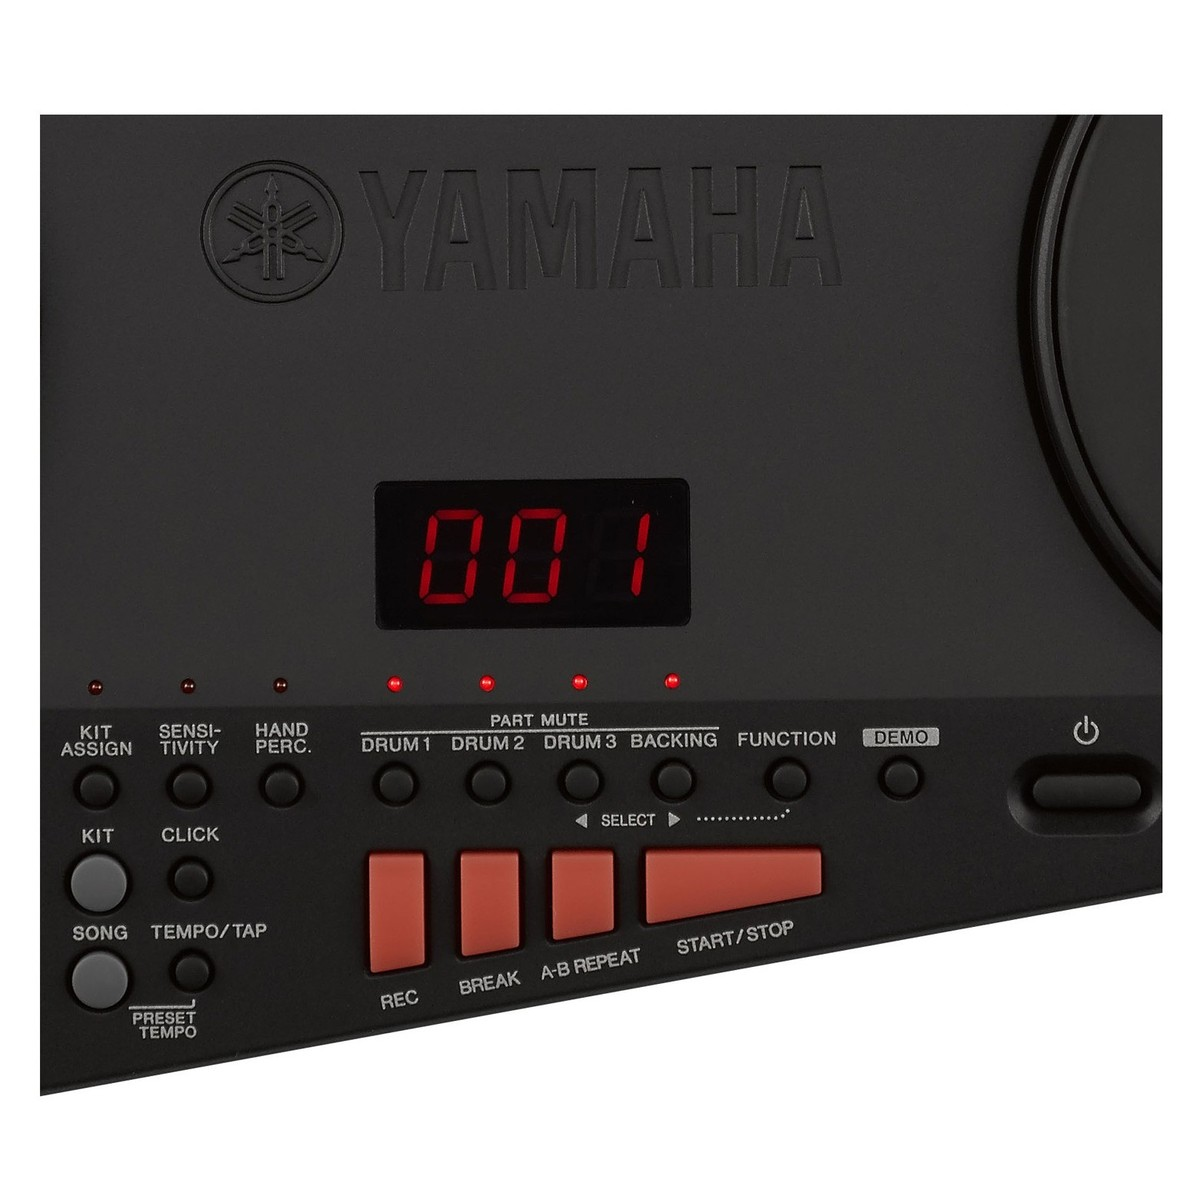 Yamaha dd 75 electronic drum pad kit at gear4music for Yamaha drum pads